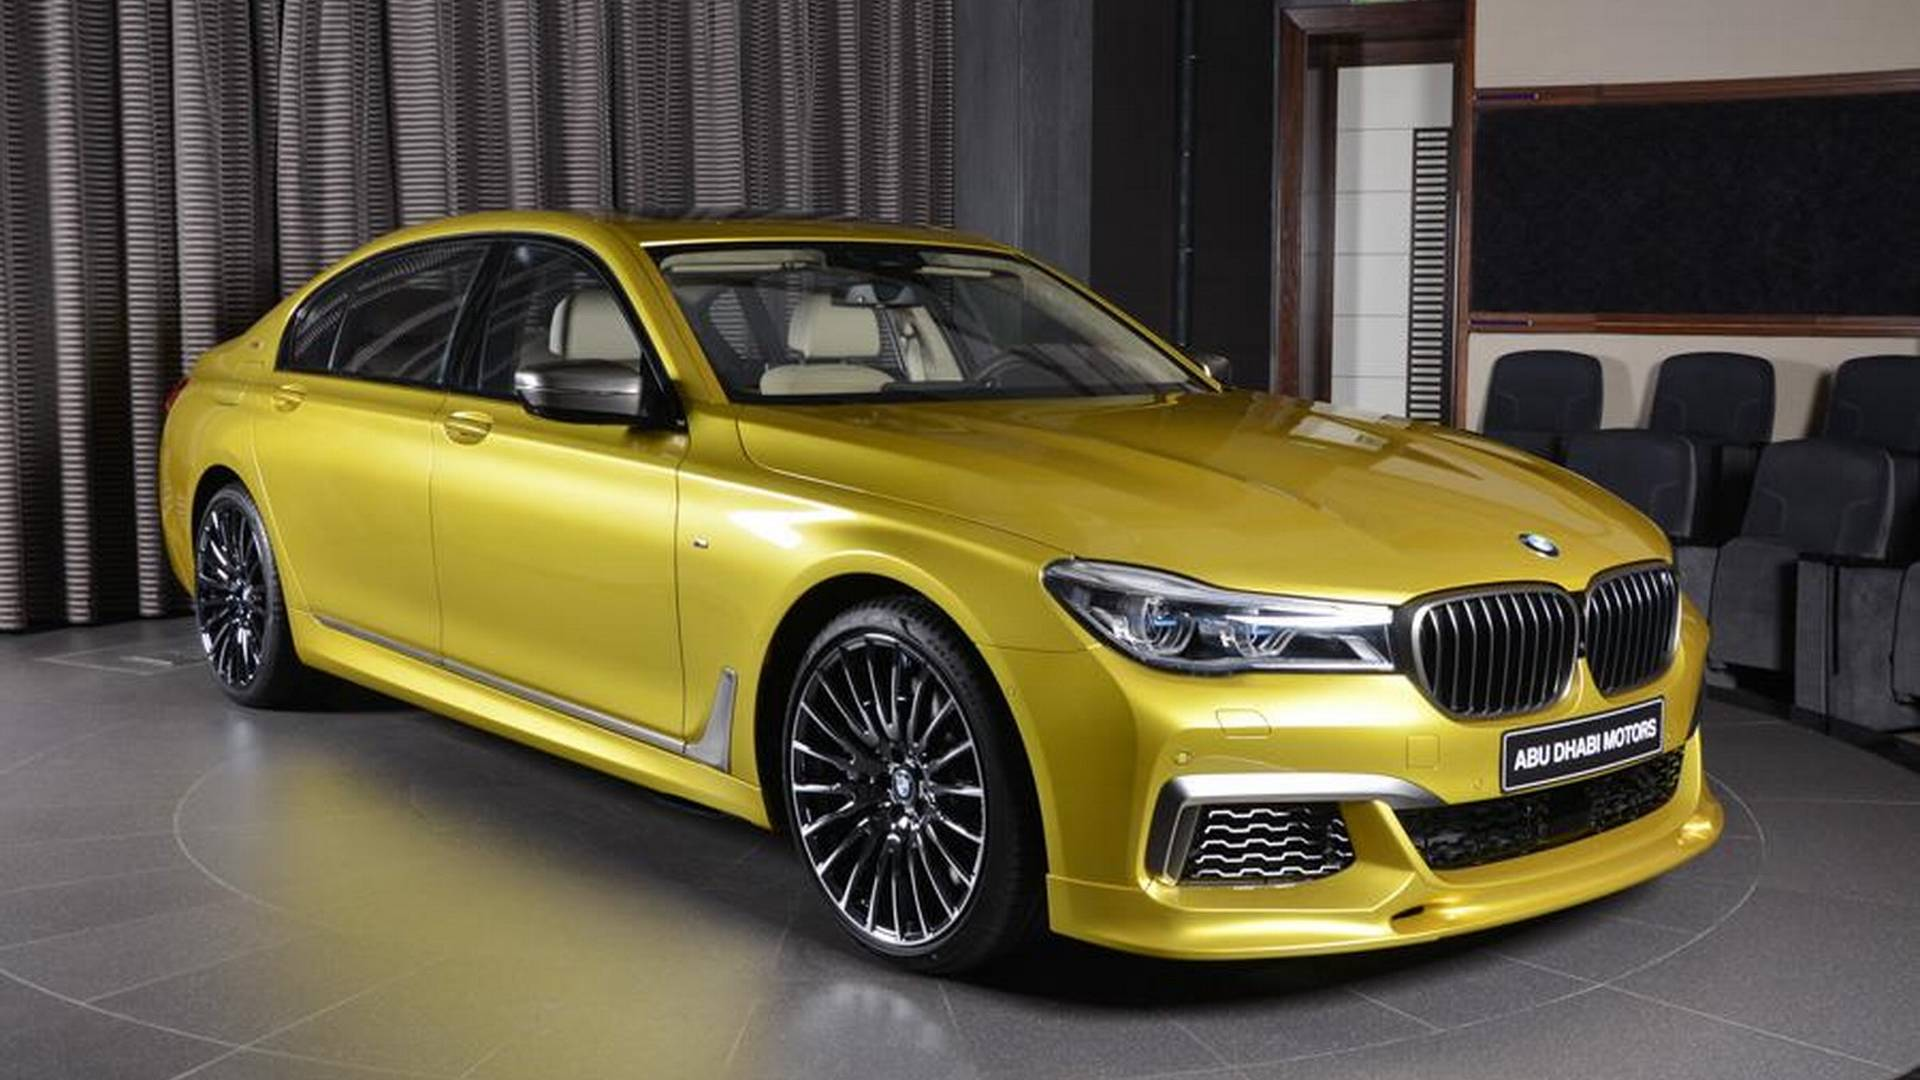 BMW_M60Li_Austin_Yellow_03